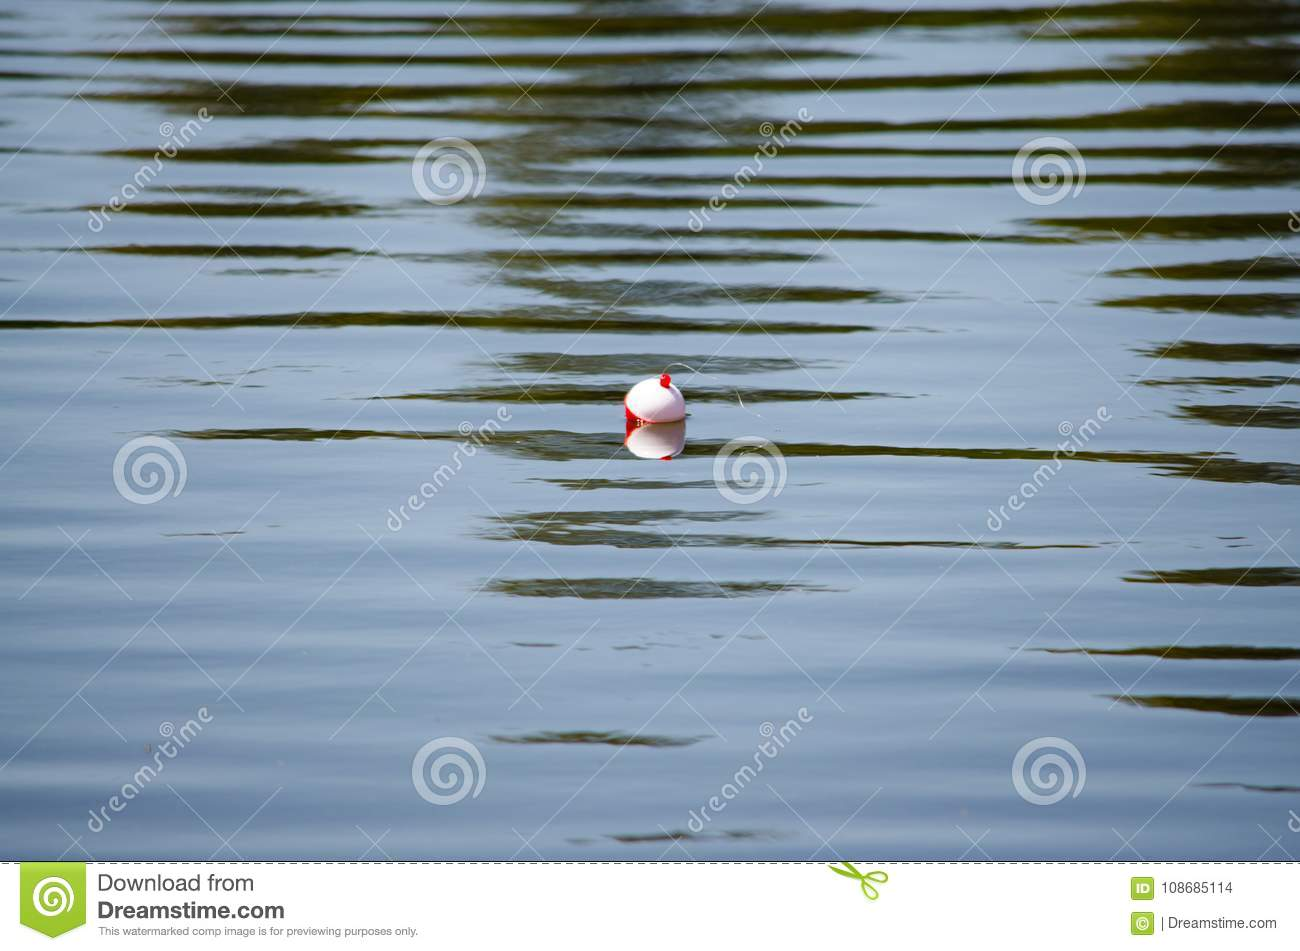 Fishing bobber floating on the water